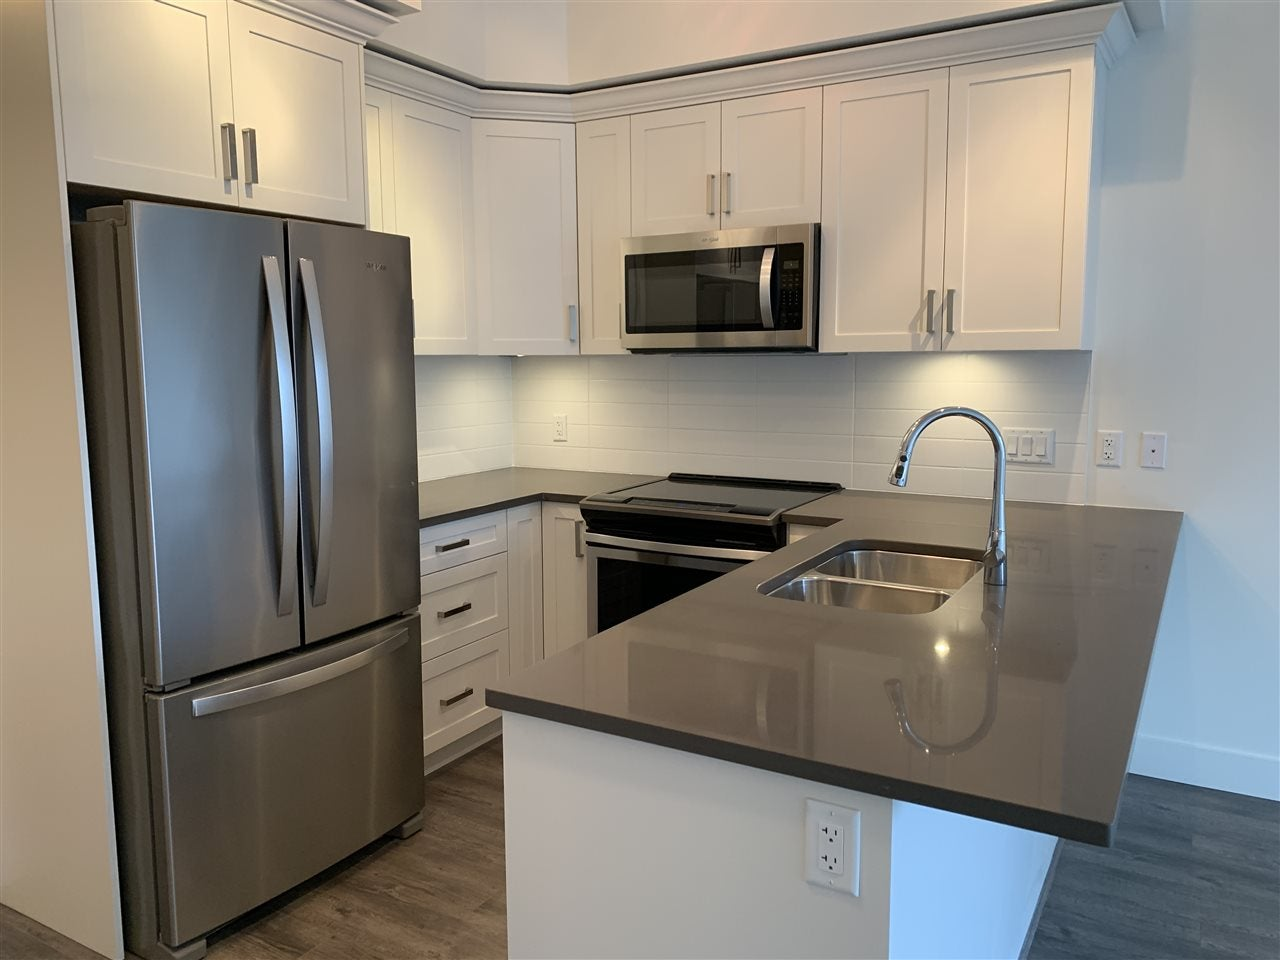 403 2436 KELLY AVENUE - Central Pt Coquitlam Apartment/Condo for sale, 1 Bedroom (R2481447) - #4